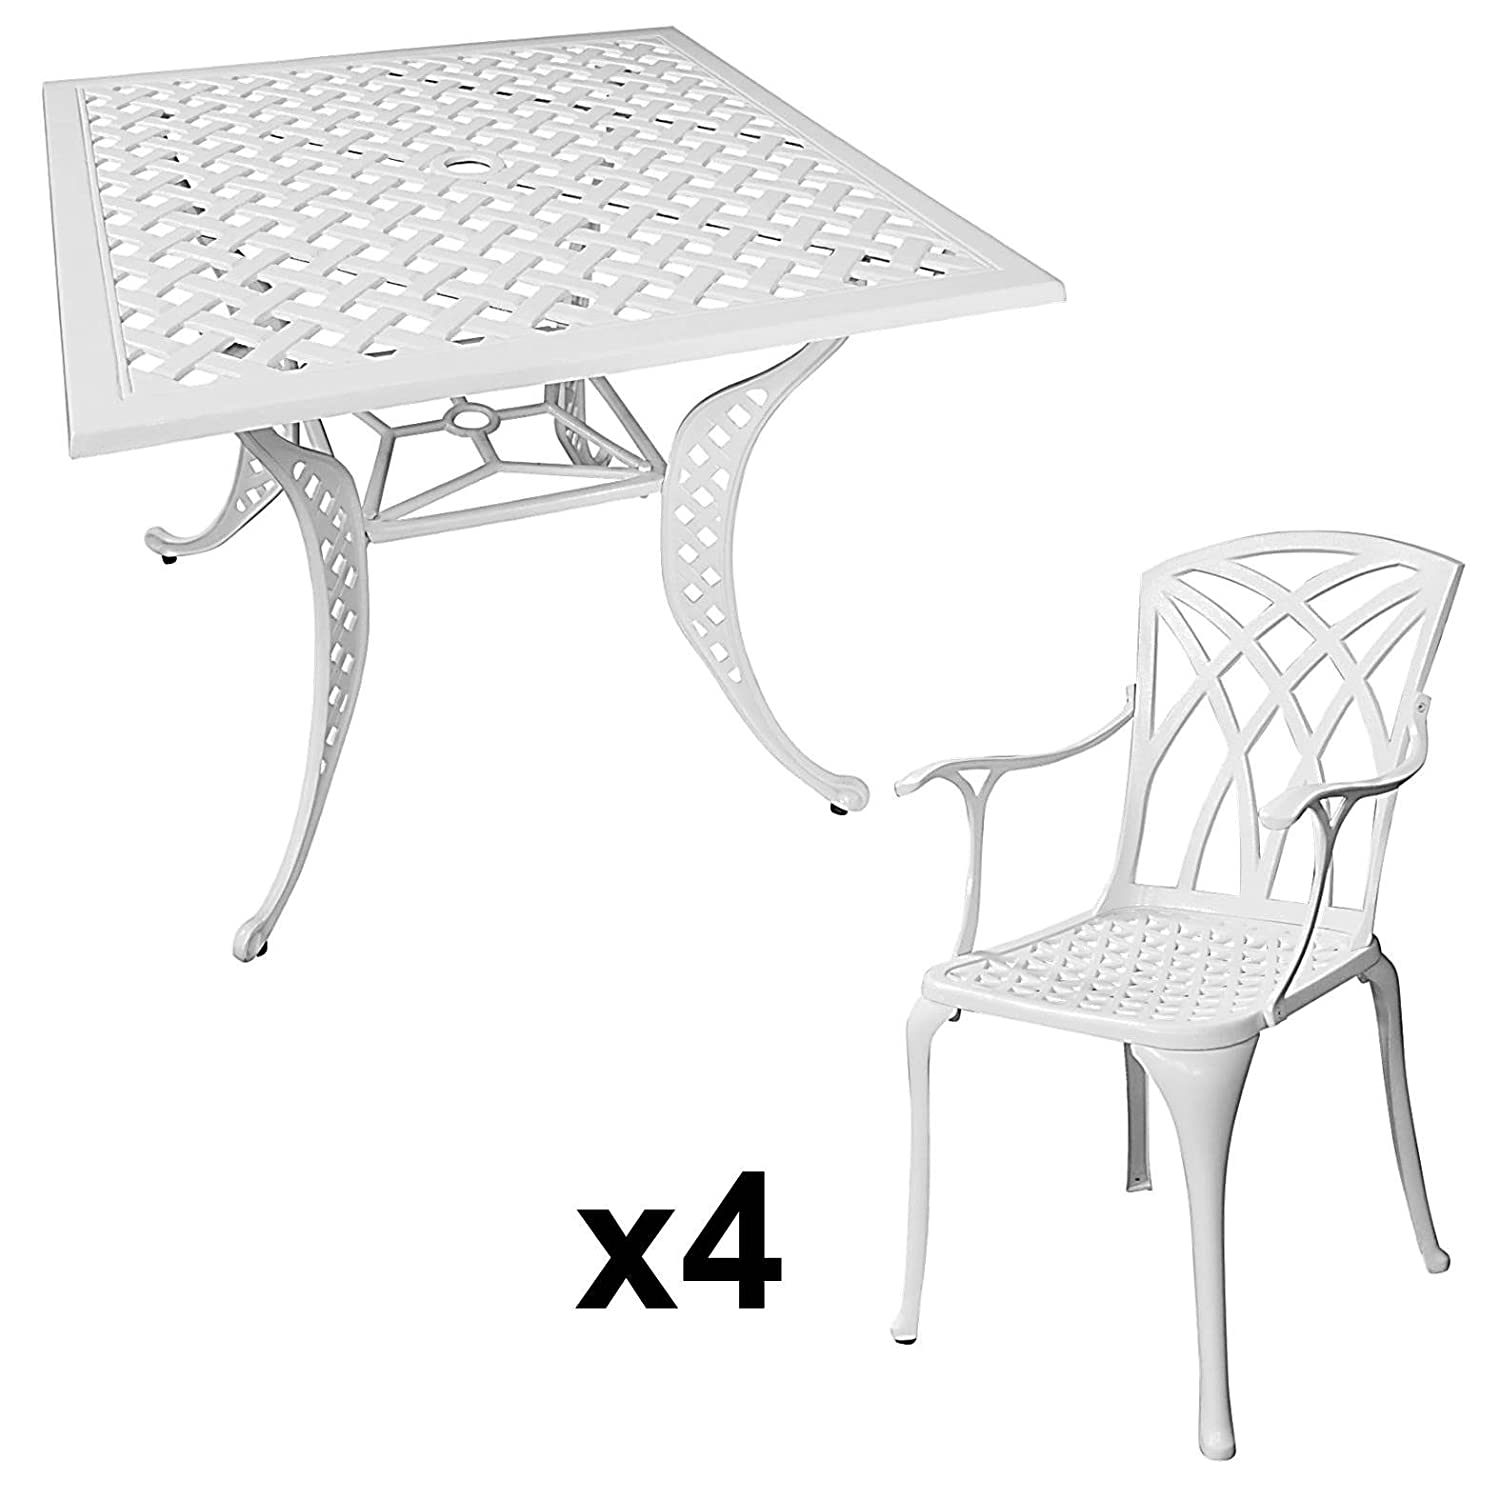 lazy susan lucy 91 cm quadratischer gartentisch mit 4 st hlen gartenm bel set aus metall. Black Bedroom Furniture Sets. Home Design Ideas